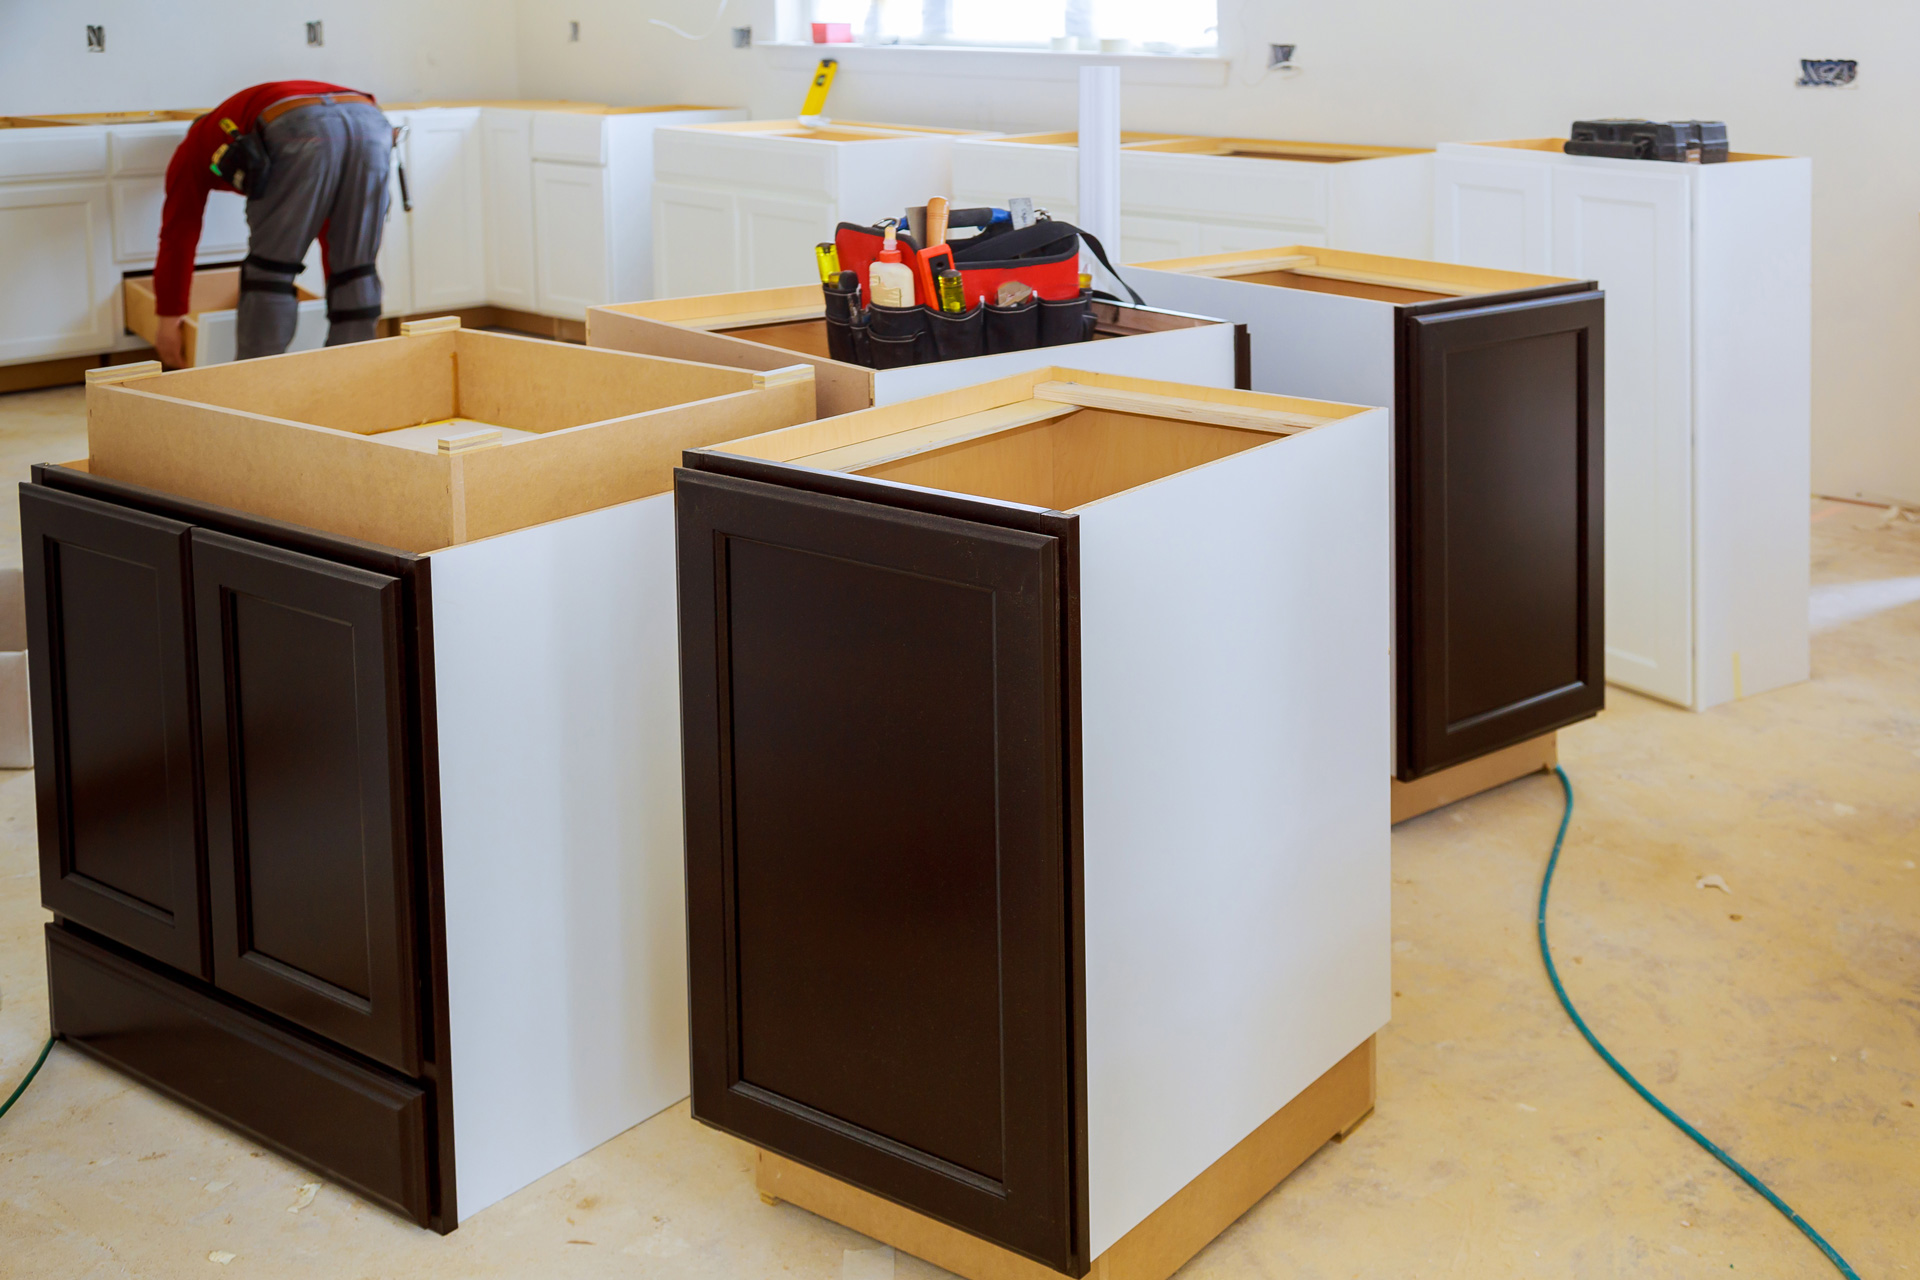 Pre Assembled Cabinets Vs Ready To Assemble Cabinets What S The Difference Cabinetcorp